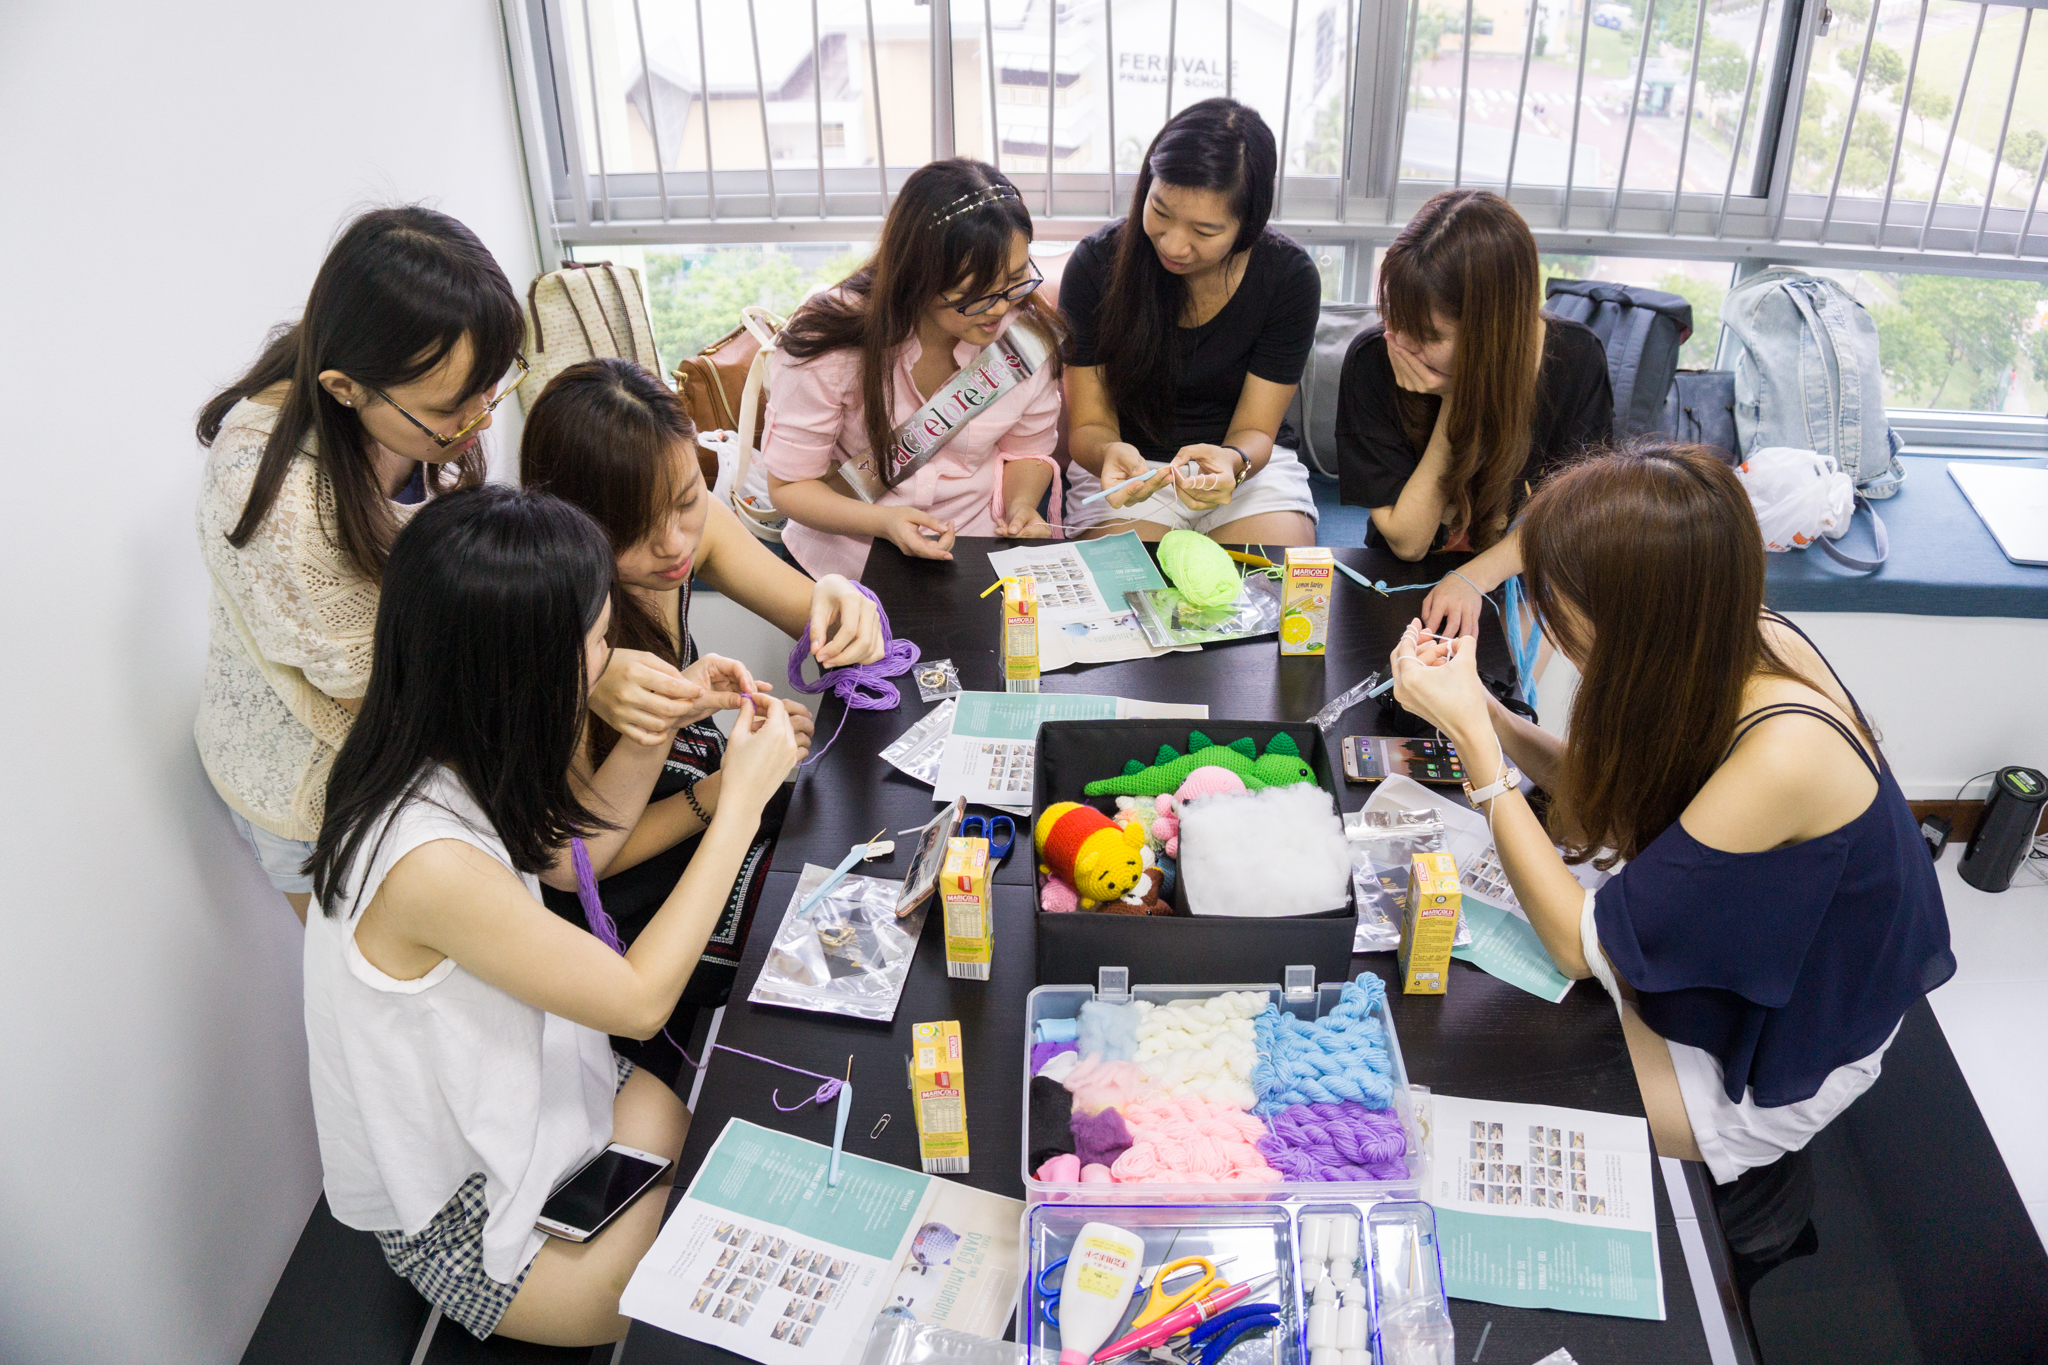 More Bachelorette Amigurumi Workshops Executed in Singapore!